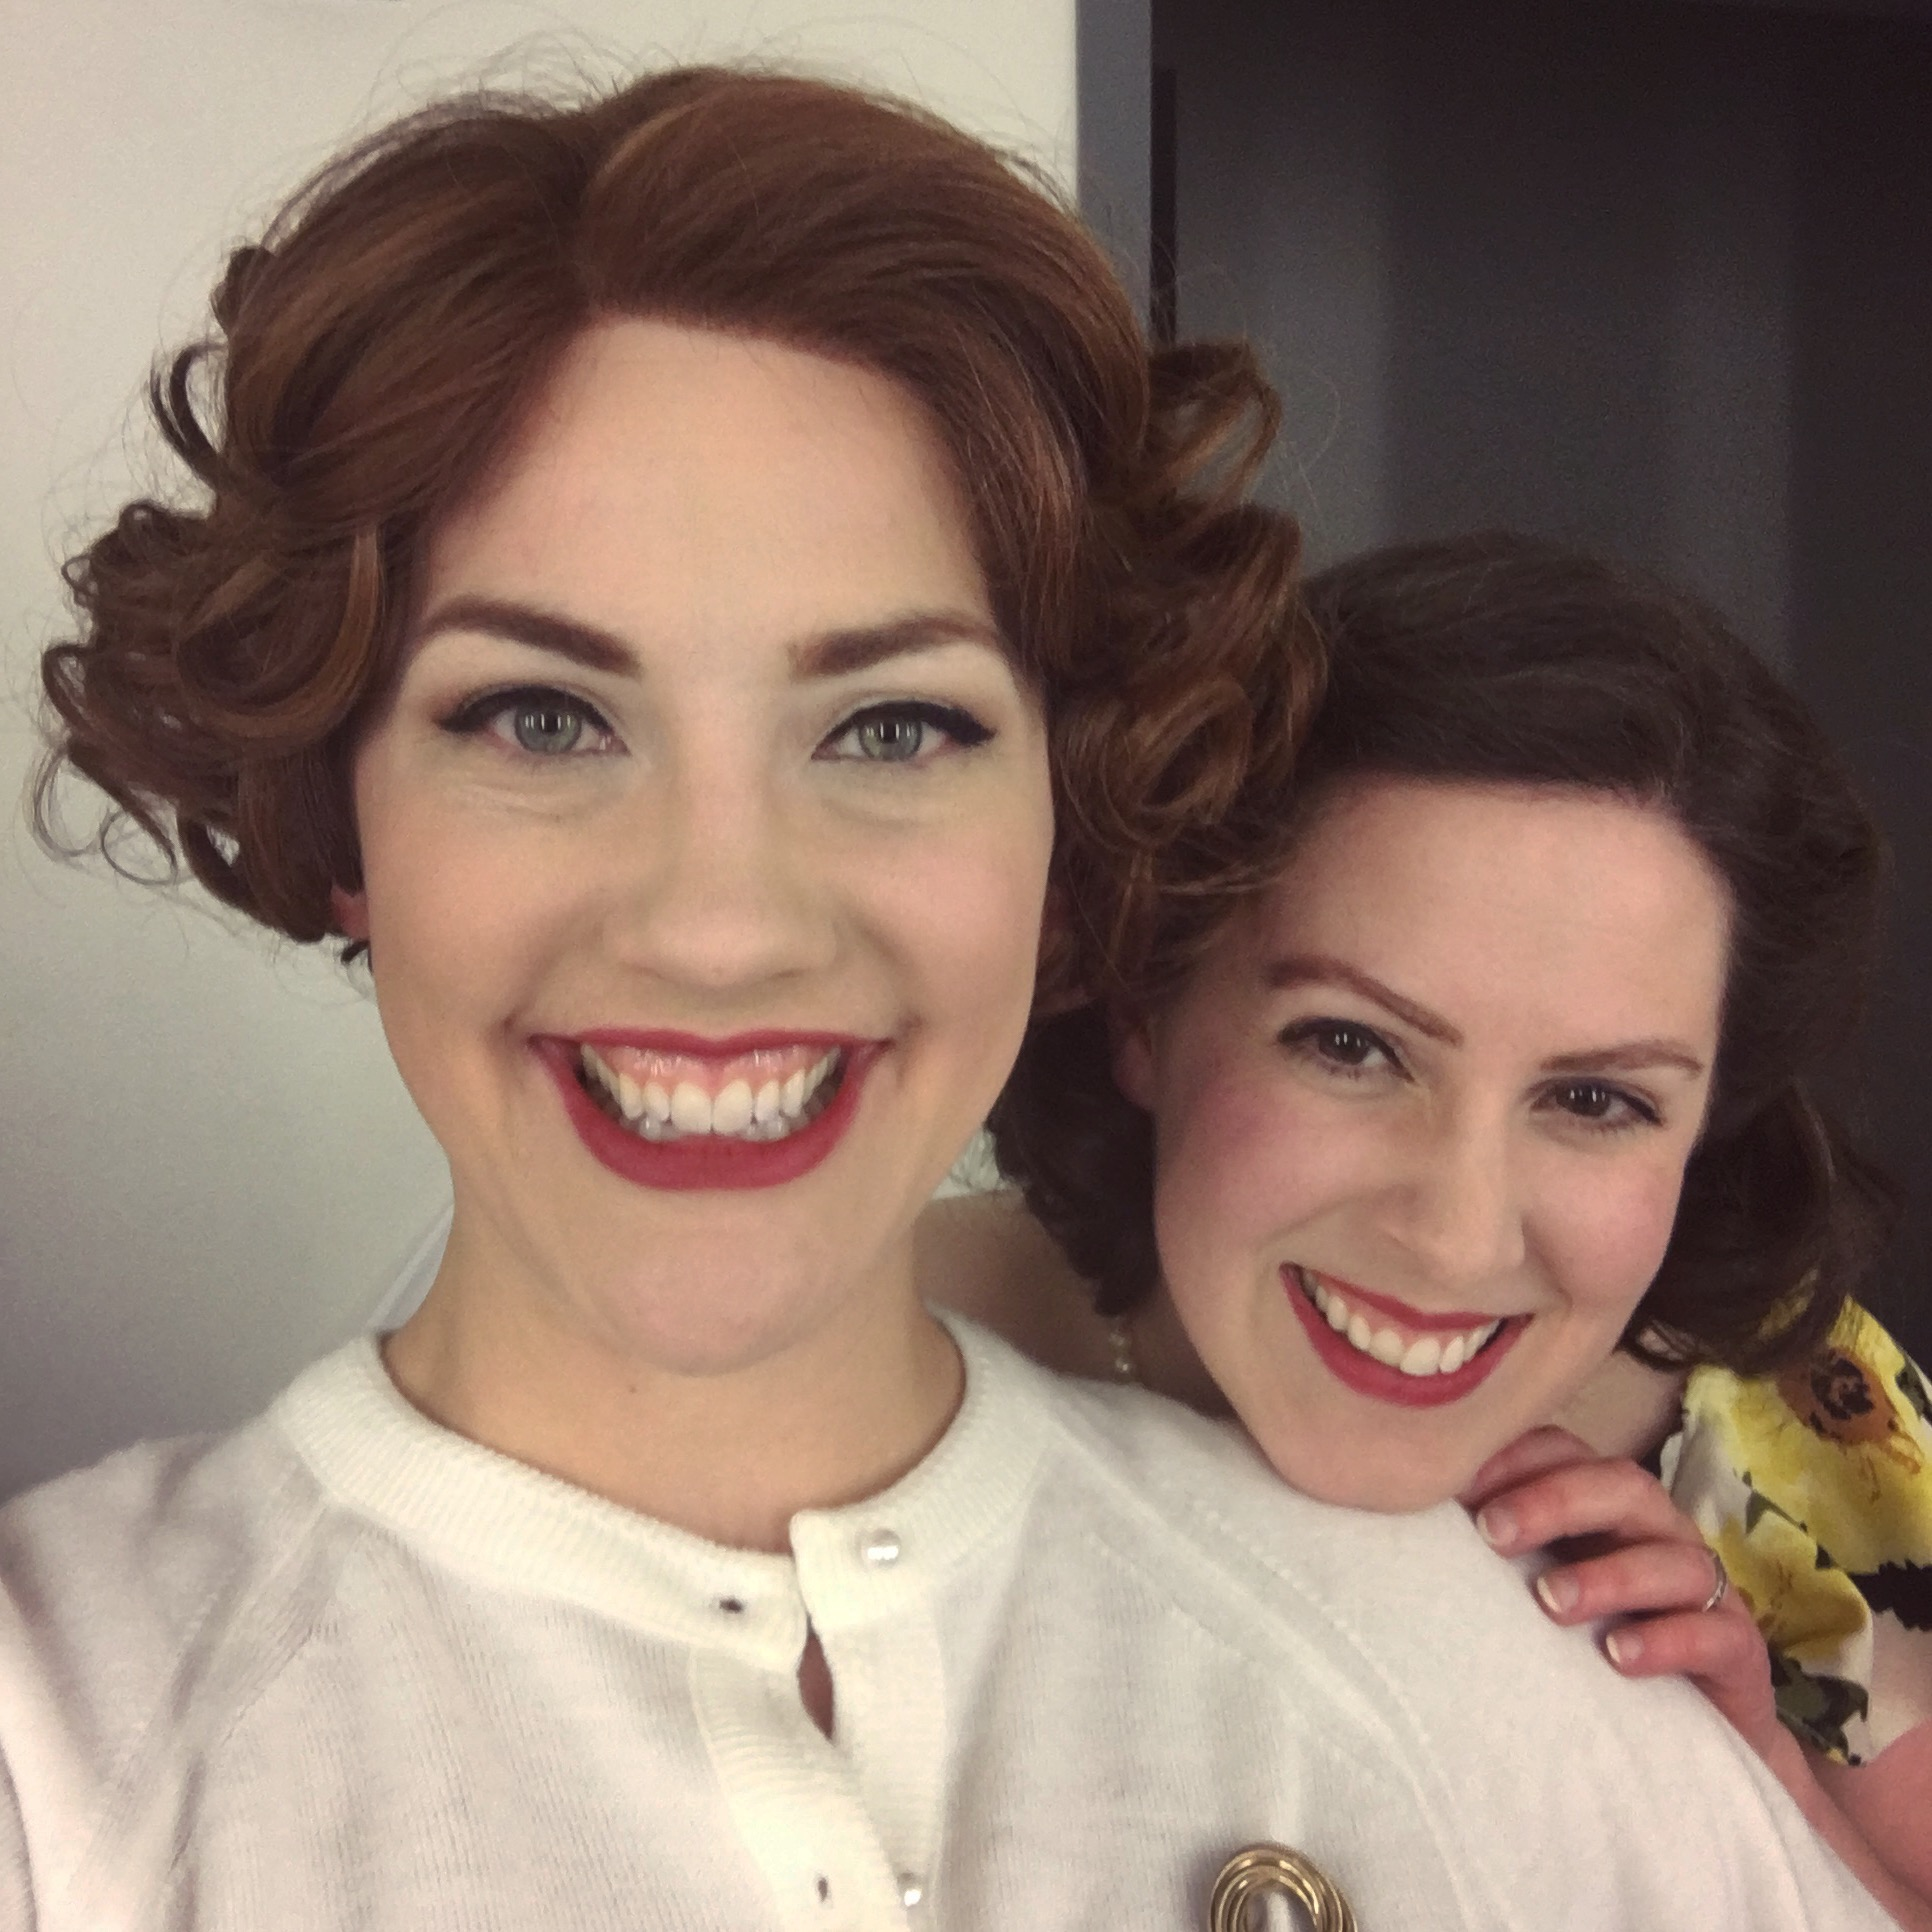 Myself and Julia Beers as Norma and Millie backstage at Perfect Arrangement.